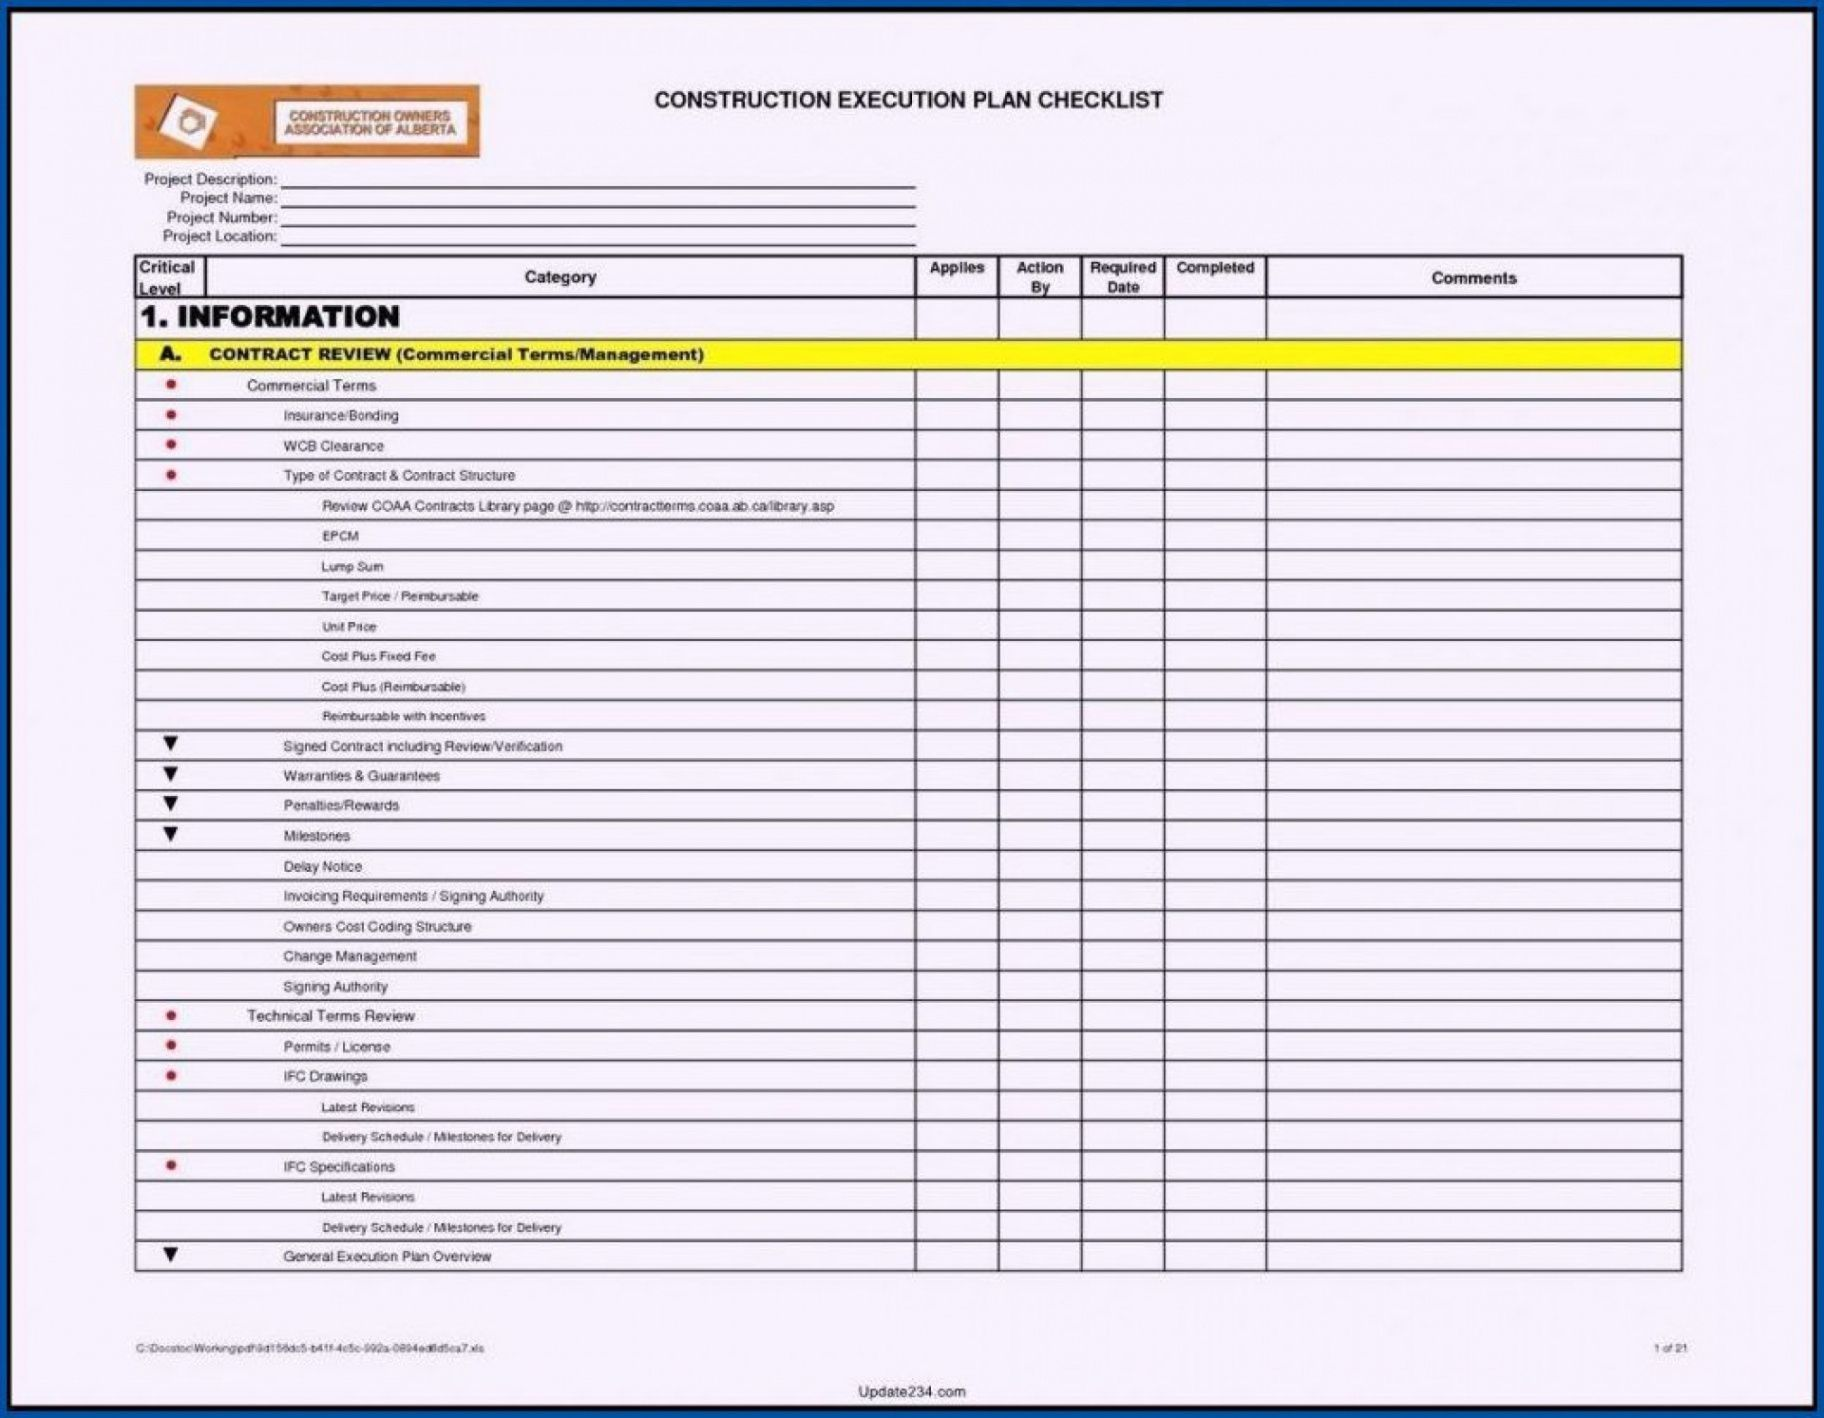 free project construction execution plan checklist template construction management checklist template example